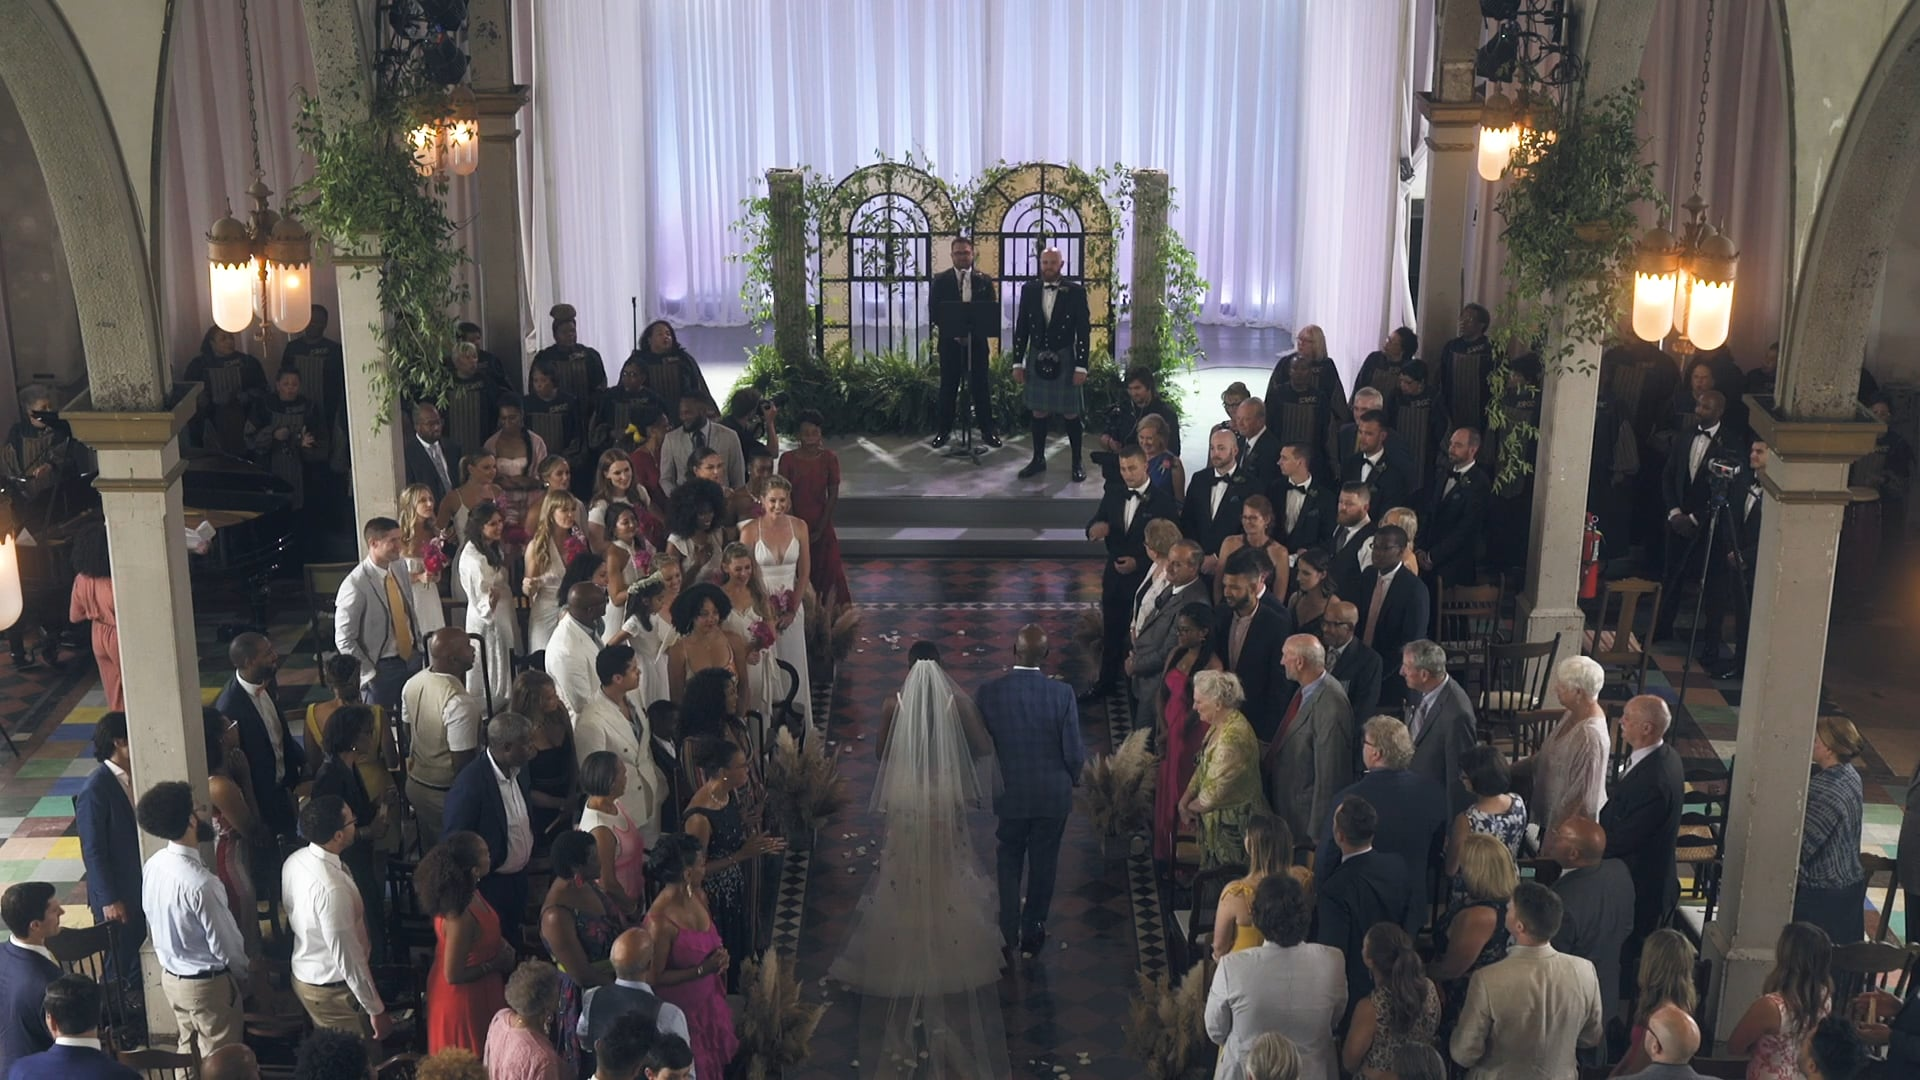 Z'hara & Kevin | Instagram Highlight | A New York Couple Travels to New Orleans to Get Married in the Iconic Marigny Opera House